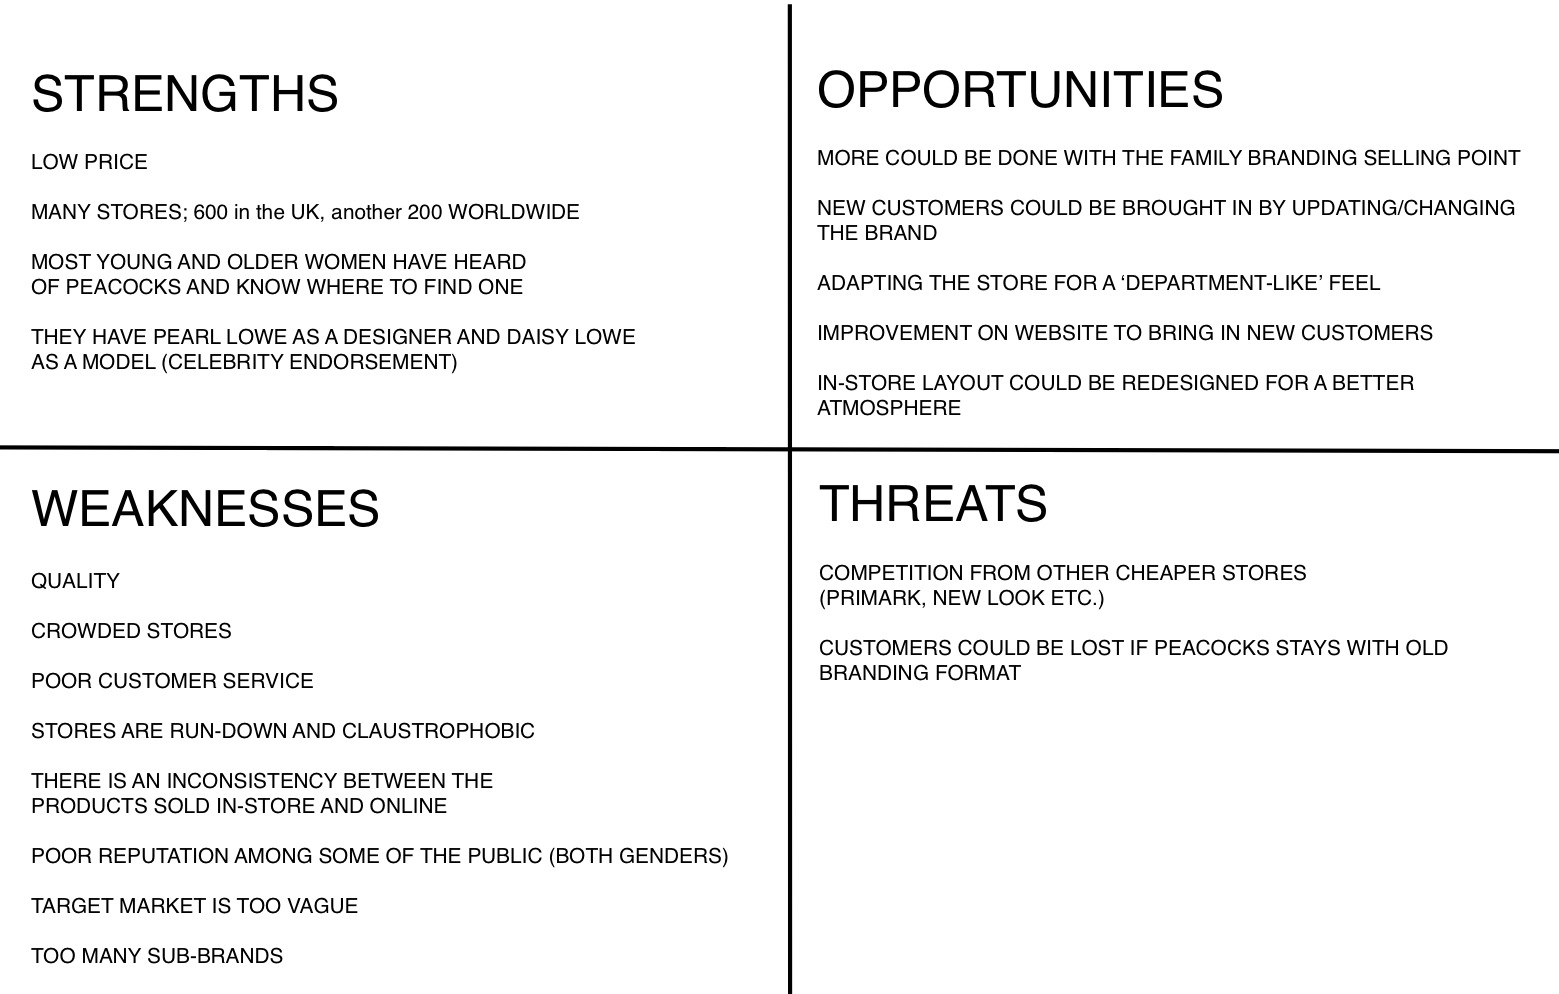 swot analysis macy s inc A business analysis of macy's inc, a departmental store chain company headquartered in cincinnati, ohio is provided, focusing on its strengths, weaknesses, opportunities for improvement and threats to the company.